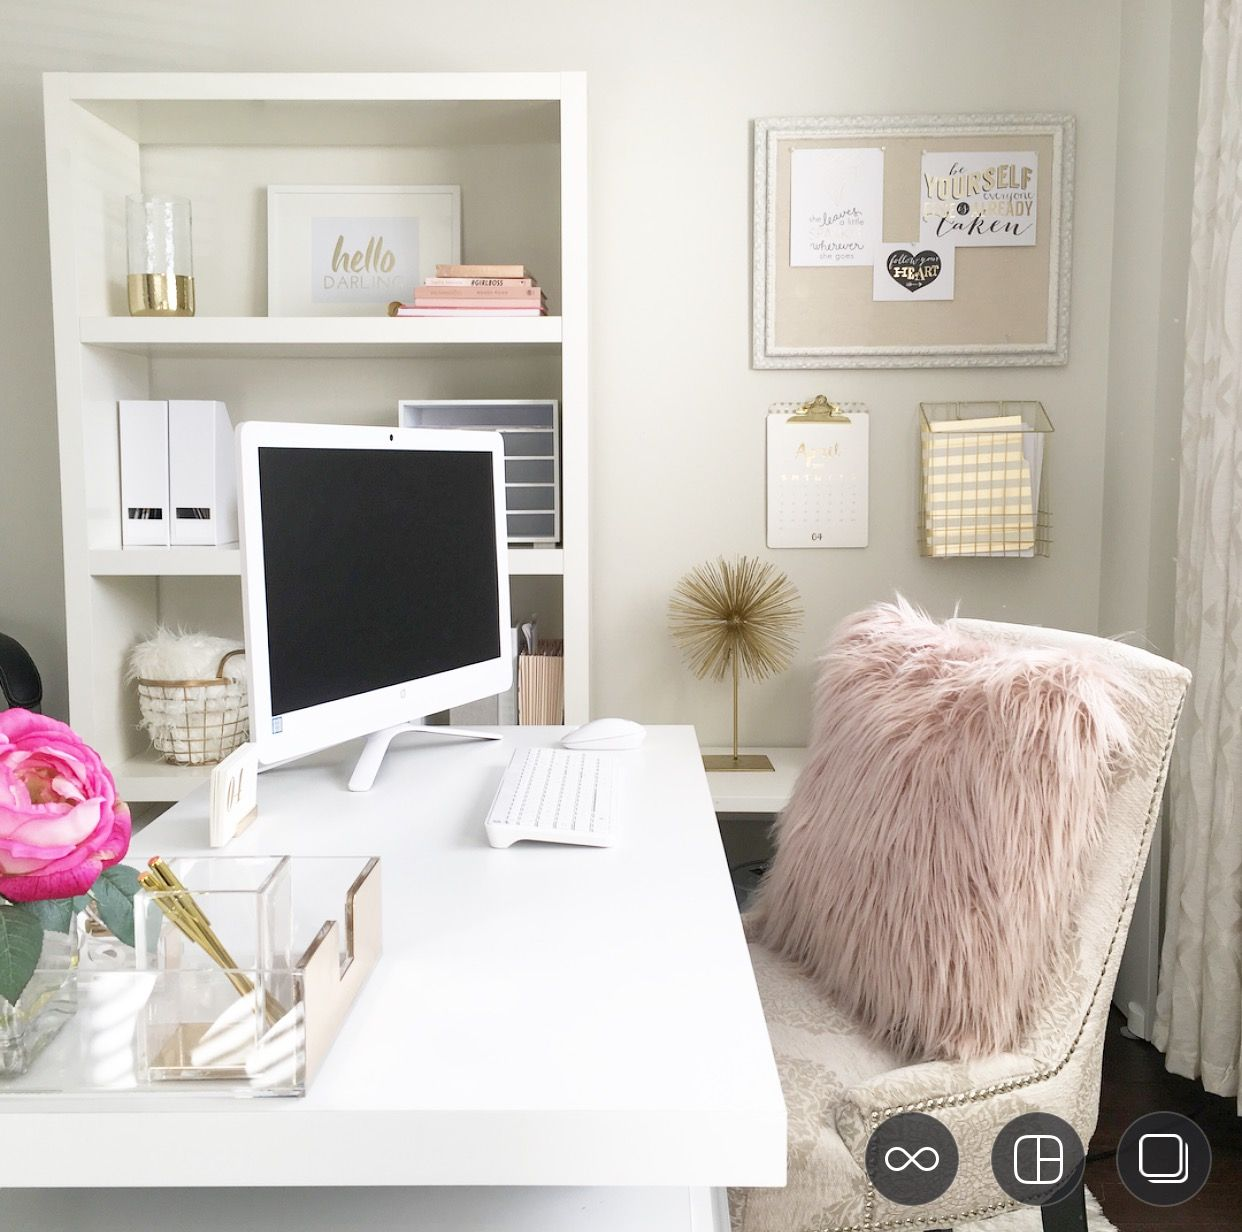 Perfect Every Female Creative Deserves A Beautiful And Inspiring Home Office.  Designed With The Creative Soul At Heart, This Office Speaks To My Need To  See Pretty ...